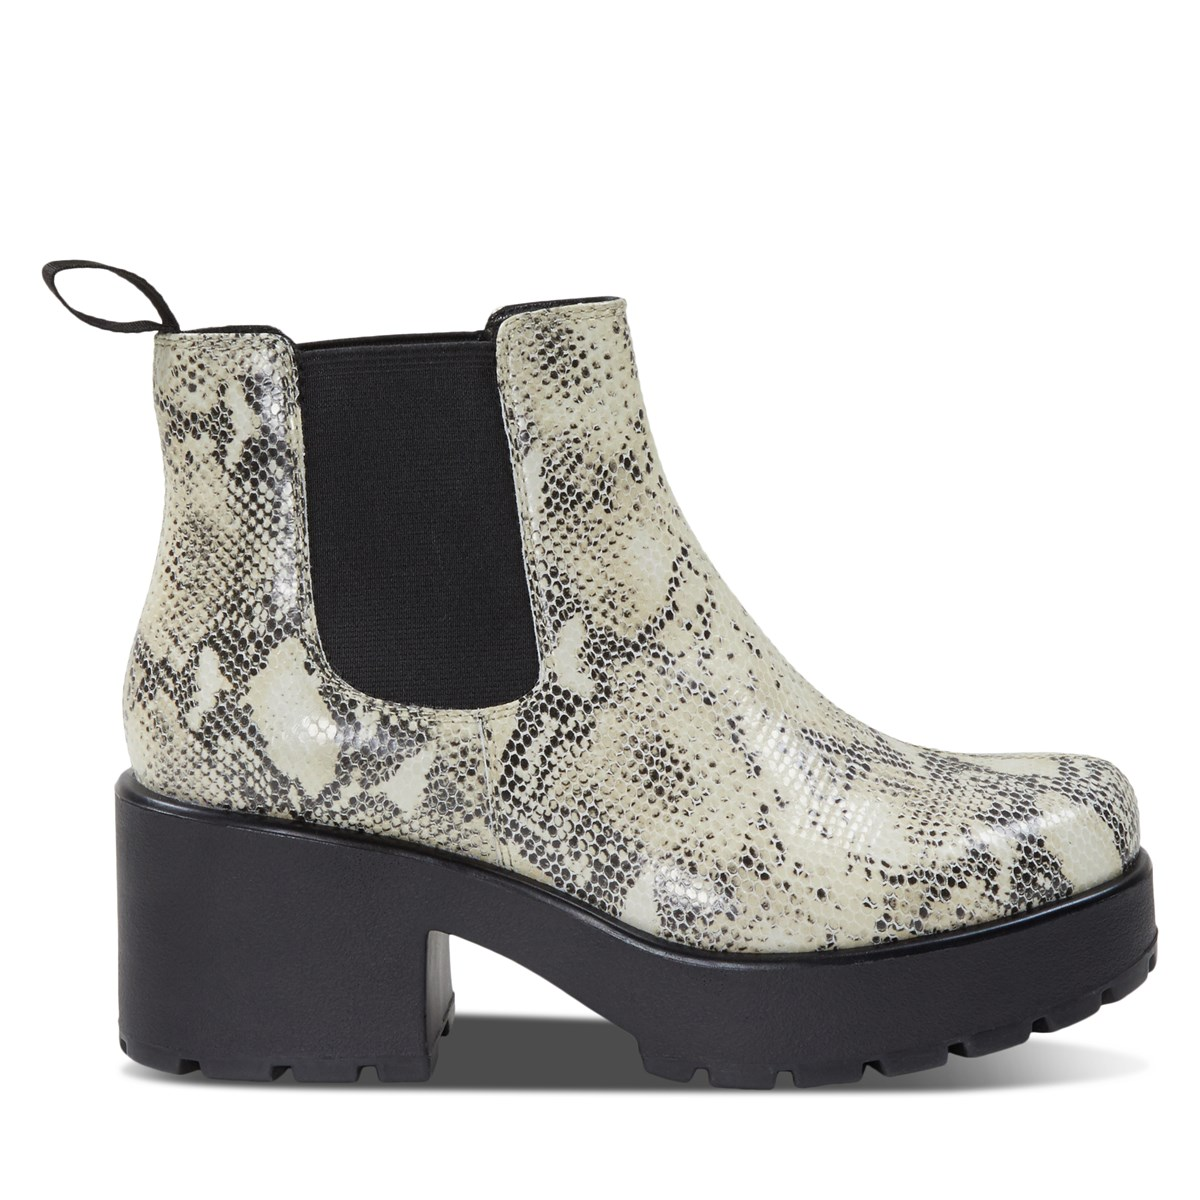 Women's Dioon Chelsea Heeled Boots in Snake Sand